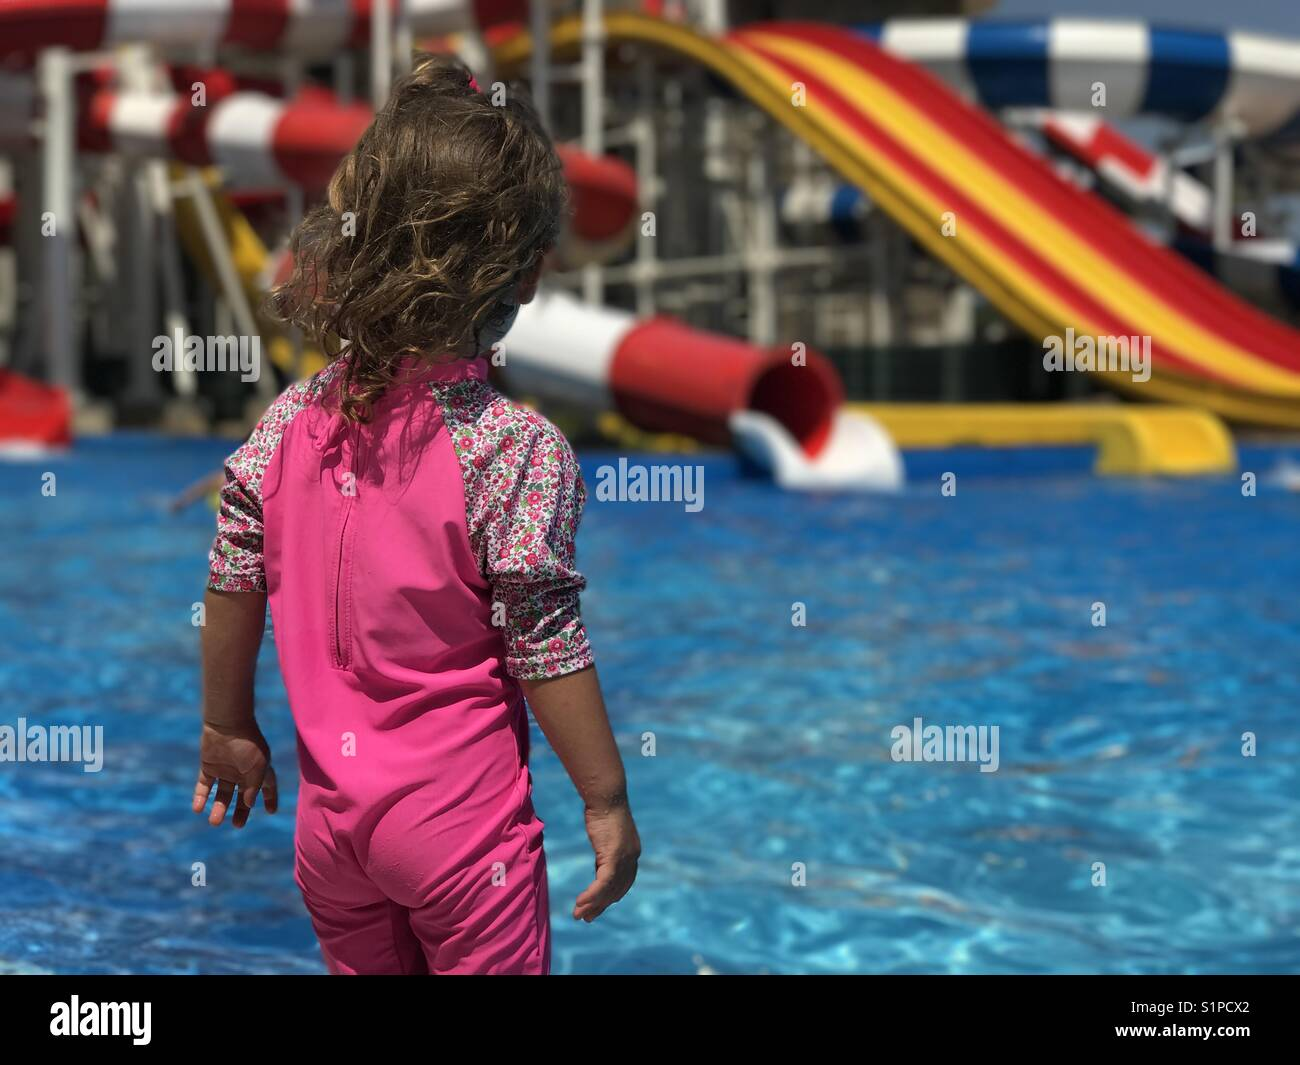 Girl having fun at aqua park - Stock Image